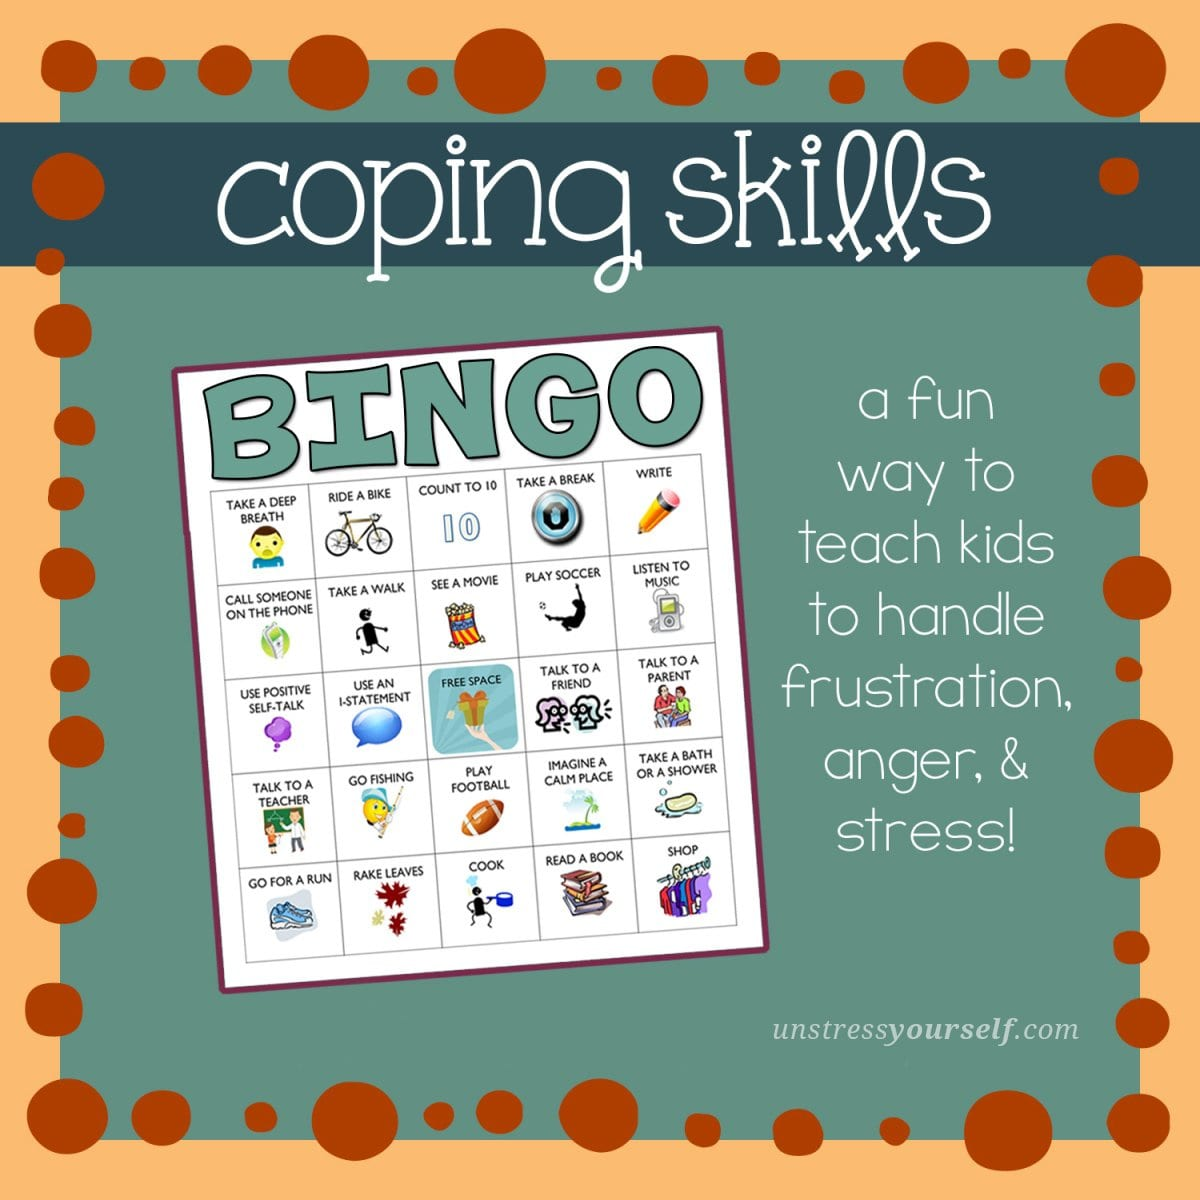 7 Best Coping Skills Worksheets From Around The Web  Unstress Yourself Regarding Coping Skills Worksheets For Youth